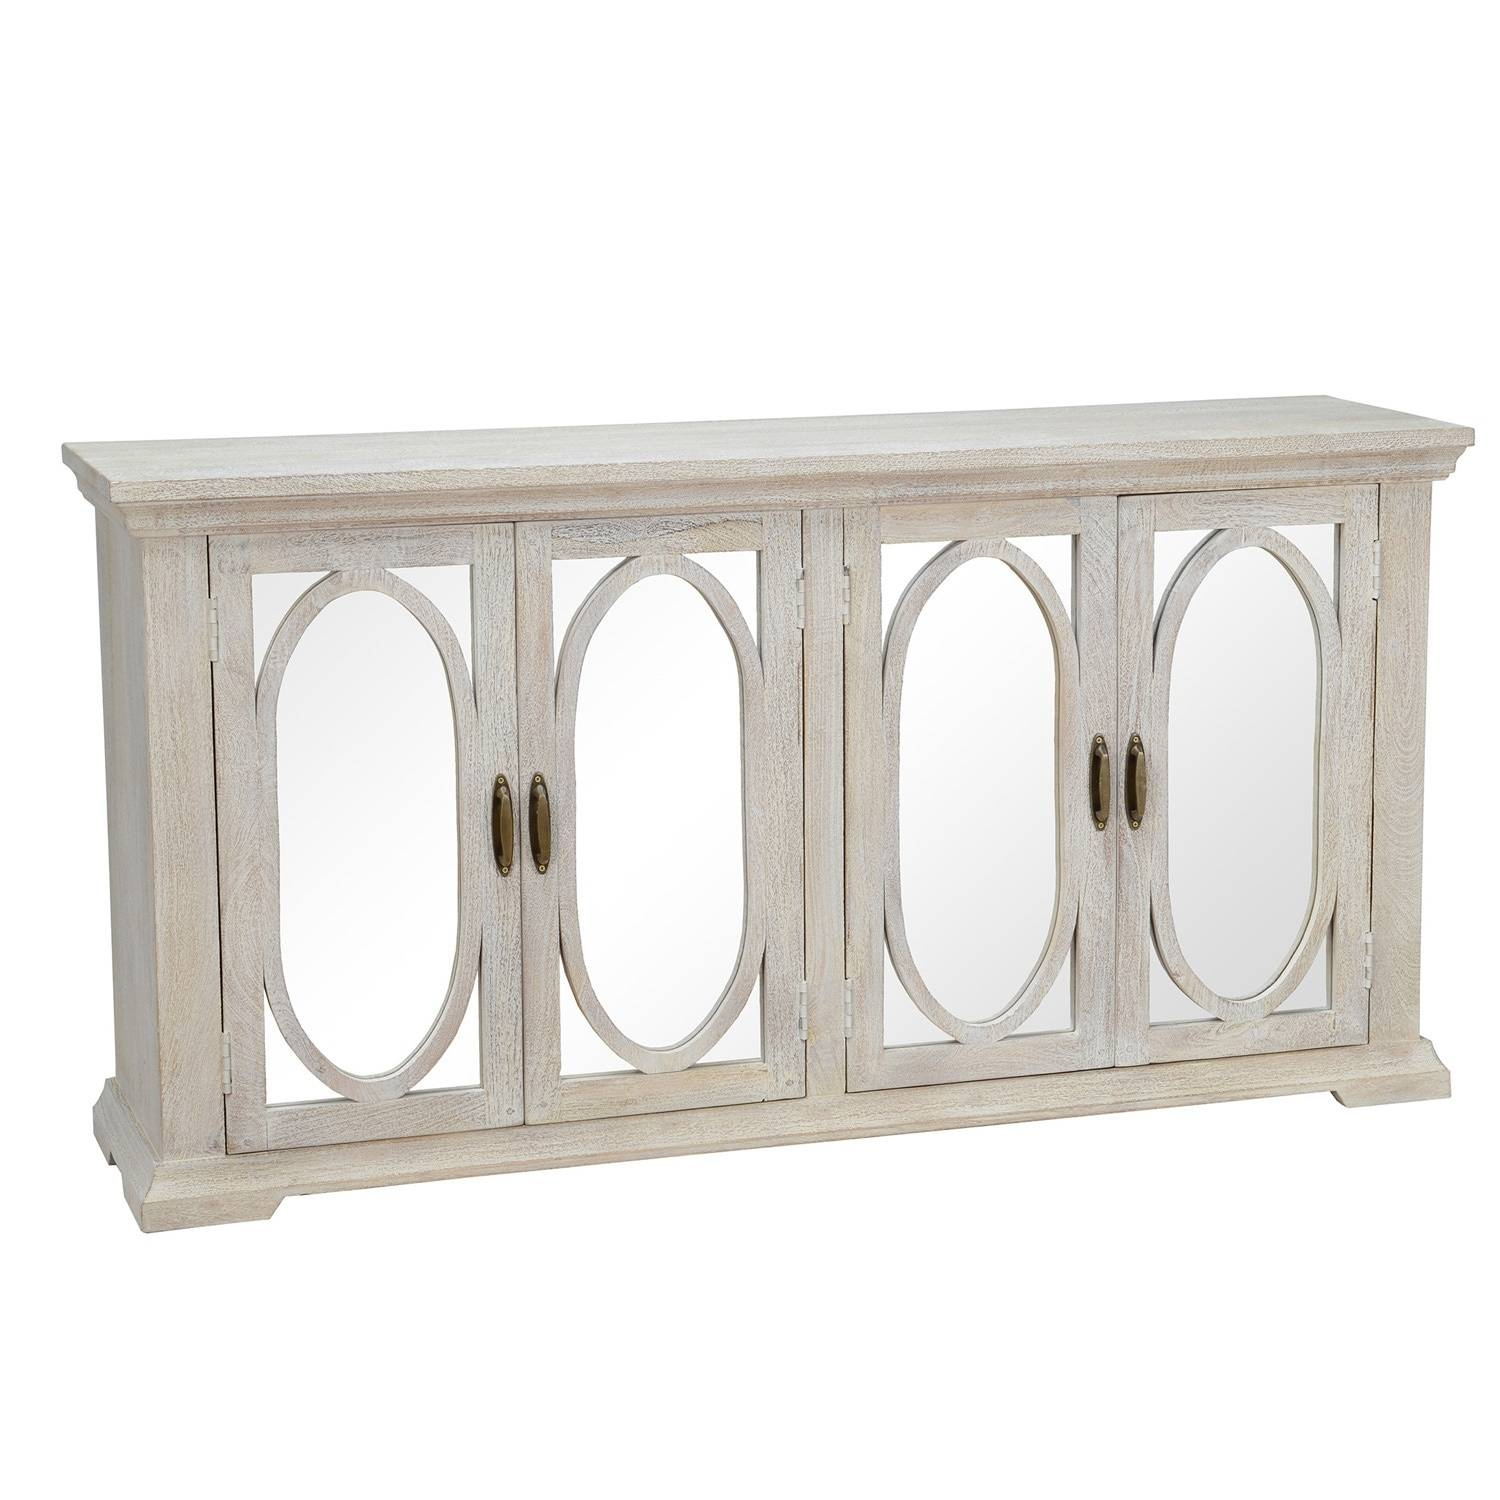 Manchester Wood Mirrored 70-Inch Sideboardkosas Home - Free with regard to 70 Inch Sideboards (Image 9 of 15)